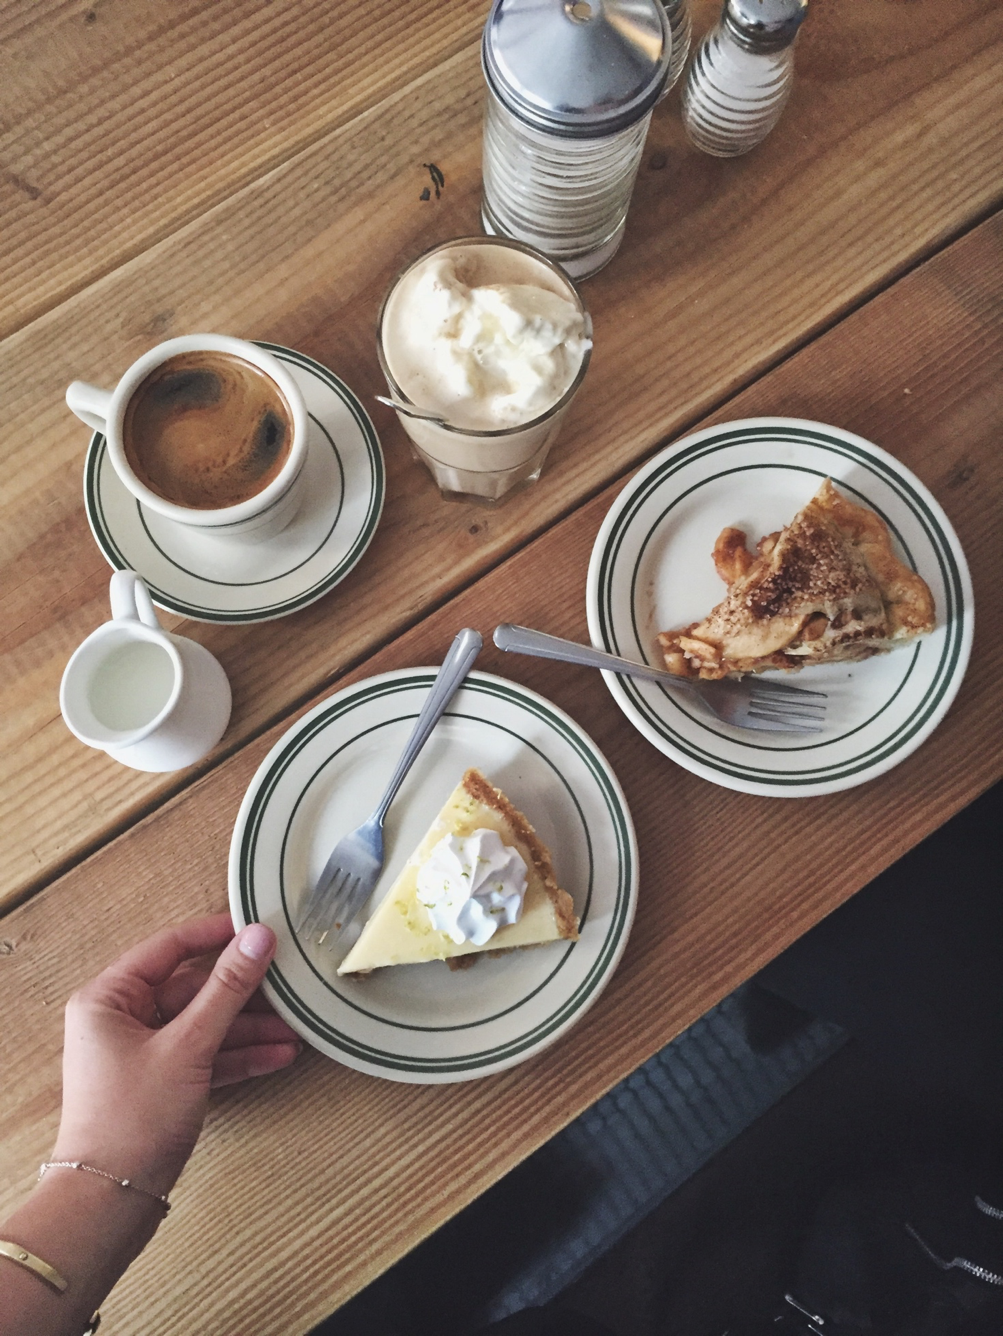 If you prefer to eat breakfast at home, you should at least treat yourself to a good cup of coffee and indulge in a nice piece of cake. (Photo: Caroline Sølver.)